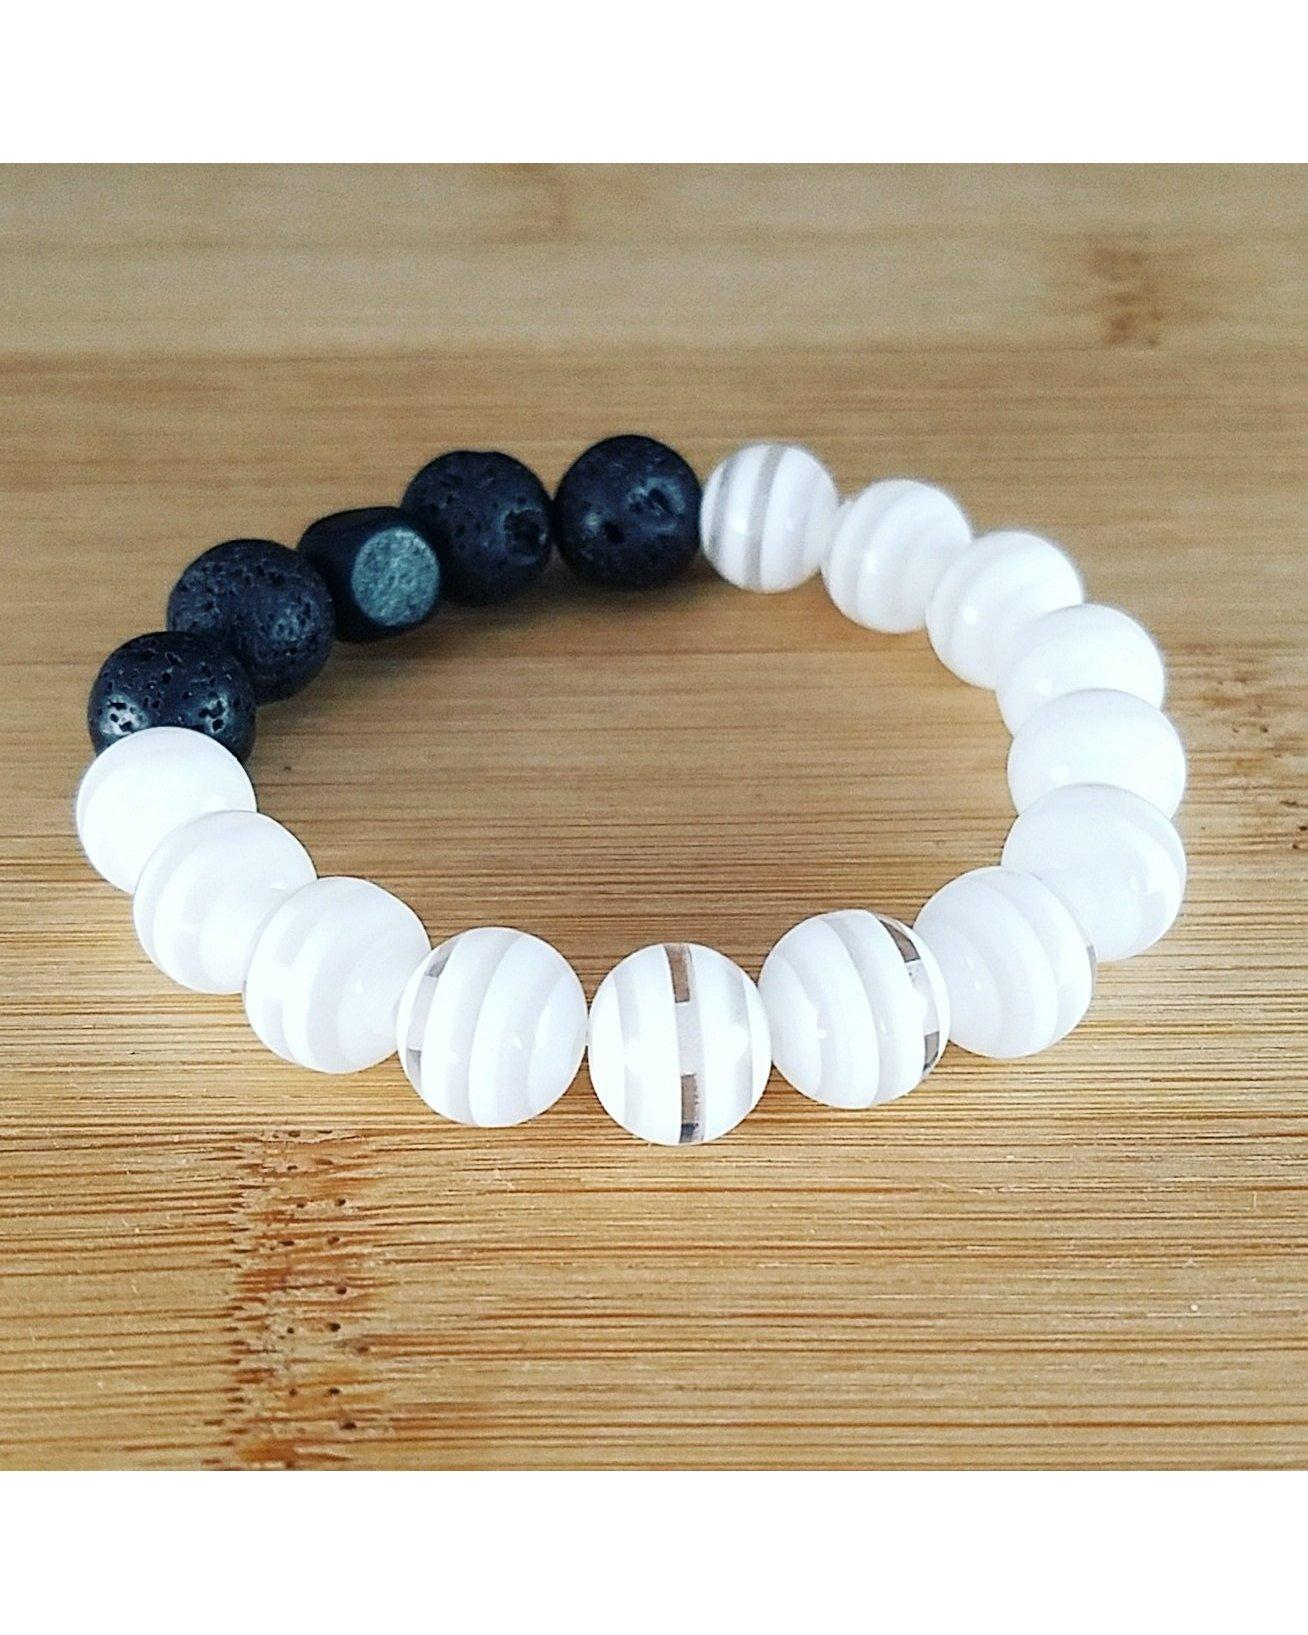 Girls/Kids/Boys White Striped and Lava Rock 10mm Bead Essential Oil Aromatherapy Diffuser Stretch Bracelet K056 - Essentially Elegant